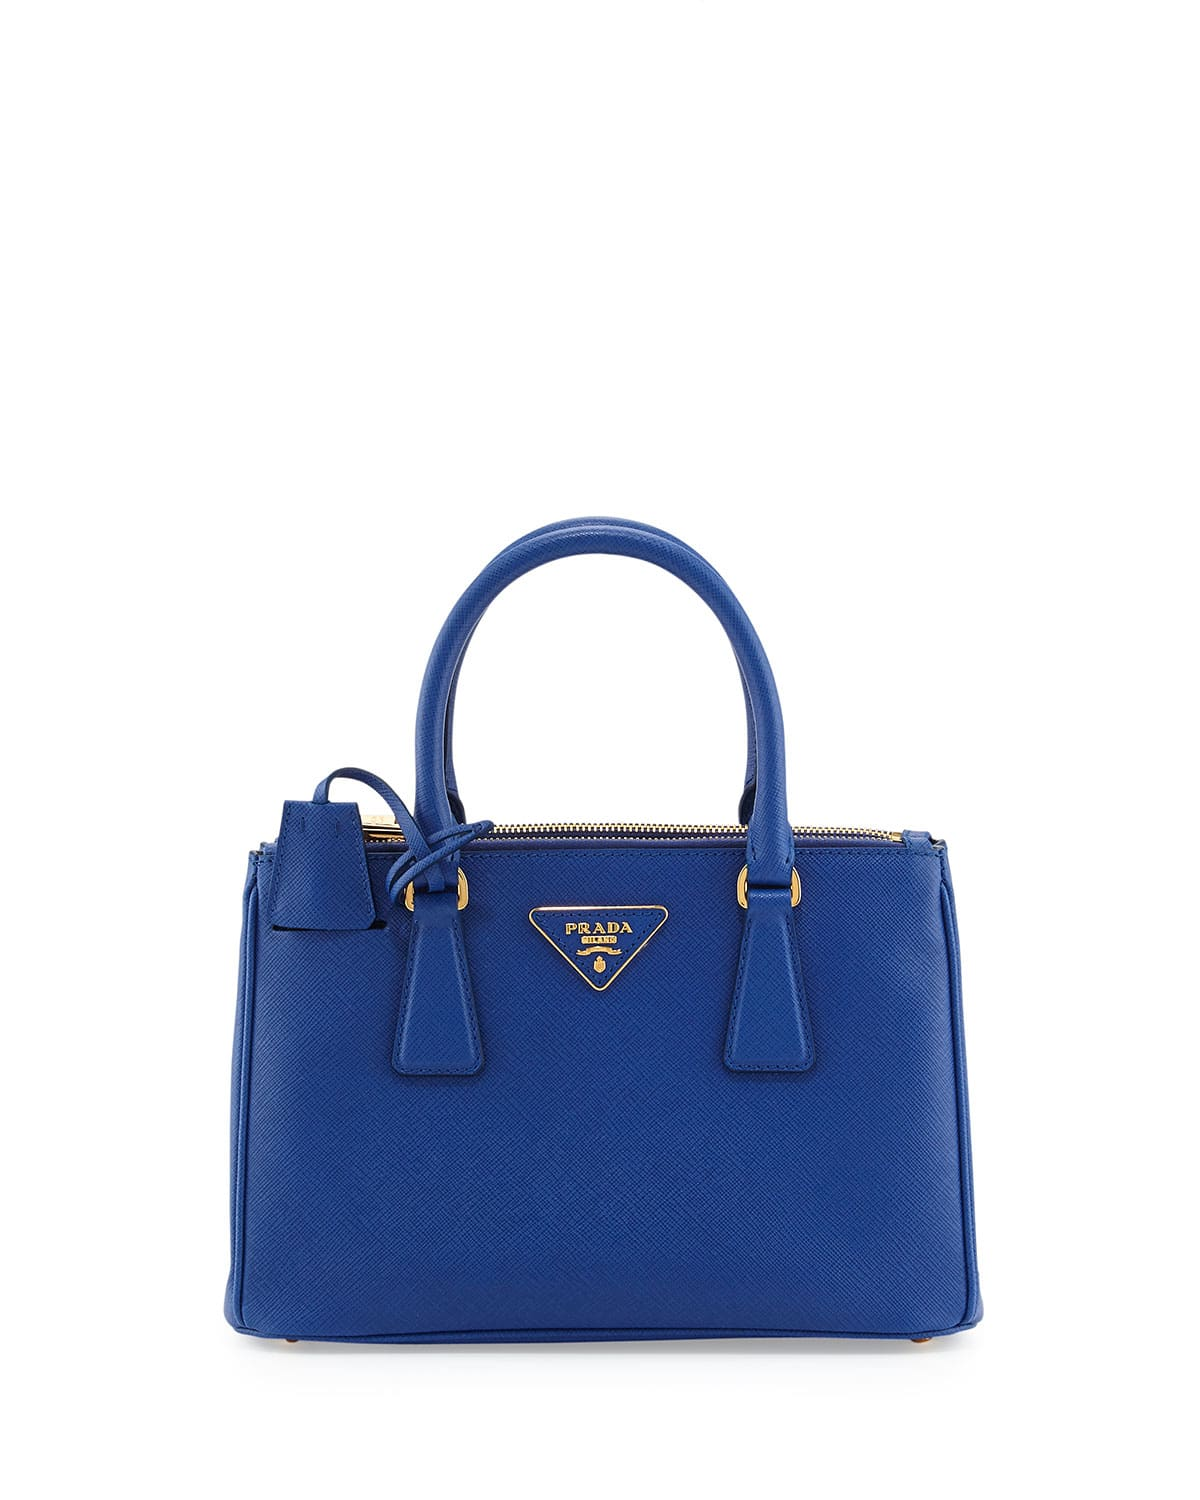 prada blue tote bag